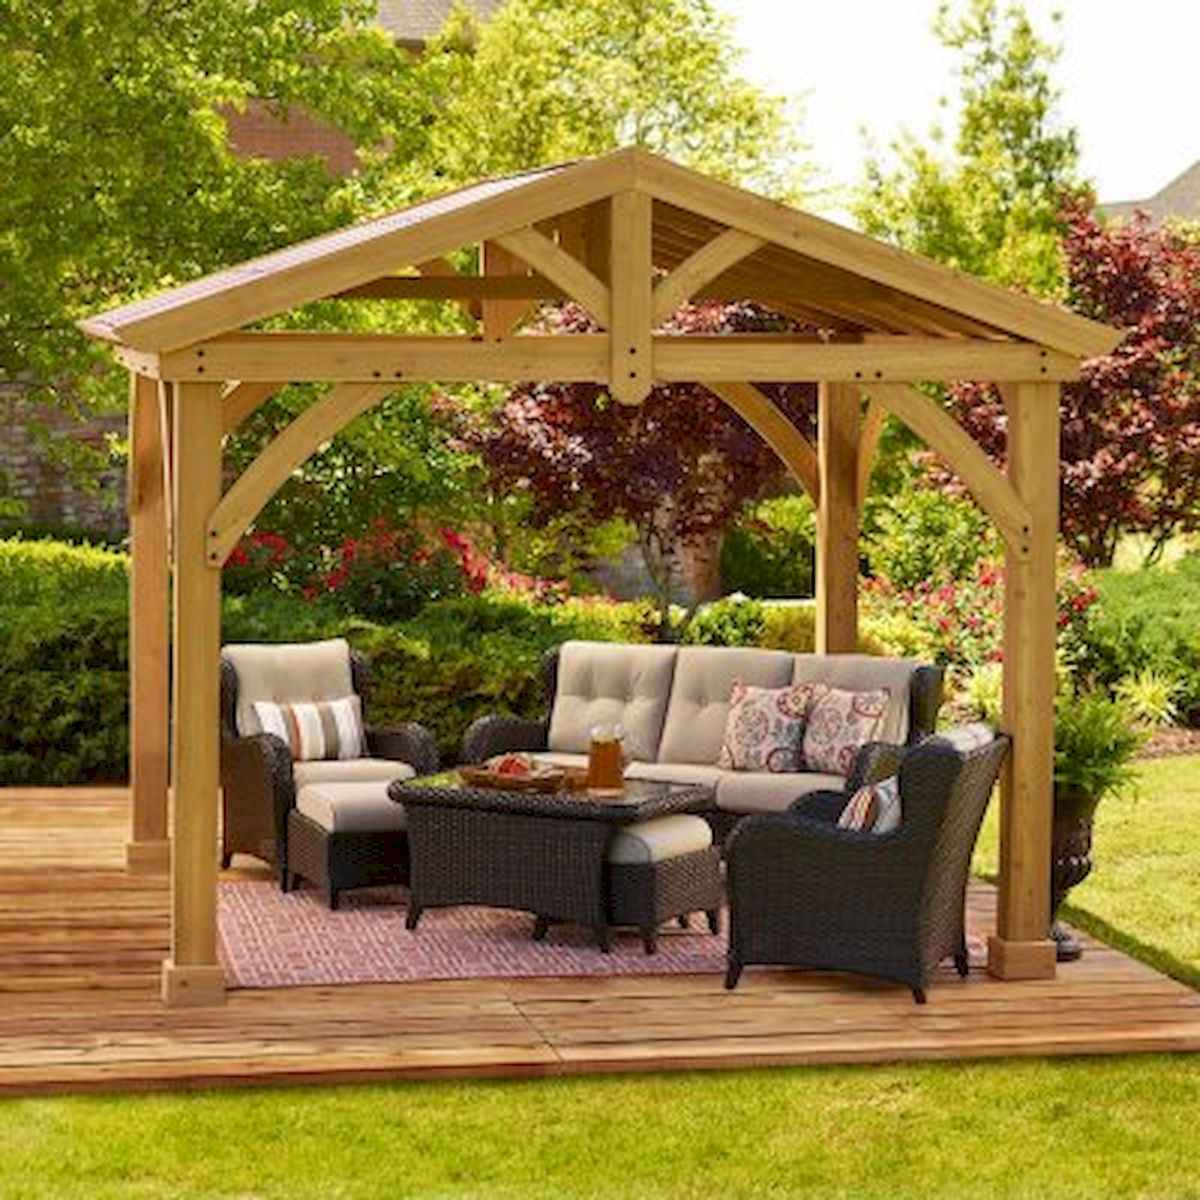 80 DIY Summery Backyard Projects Ideas Make Your Summer Awesome (45)